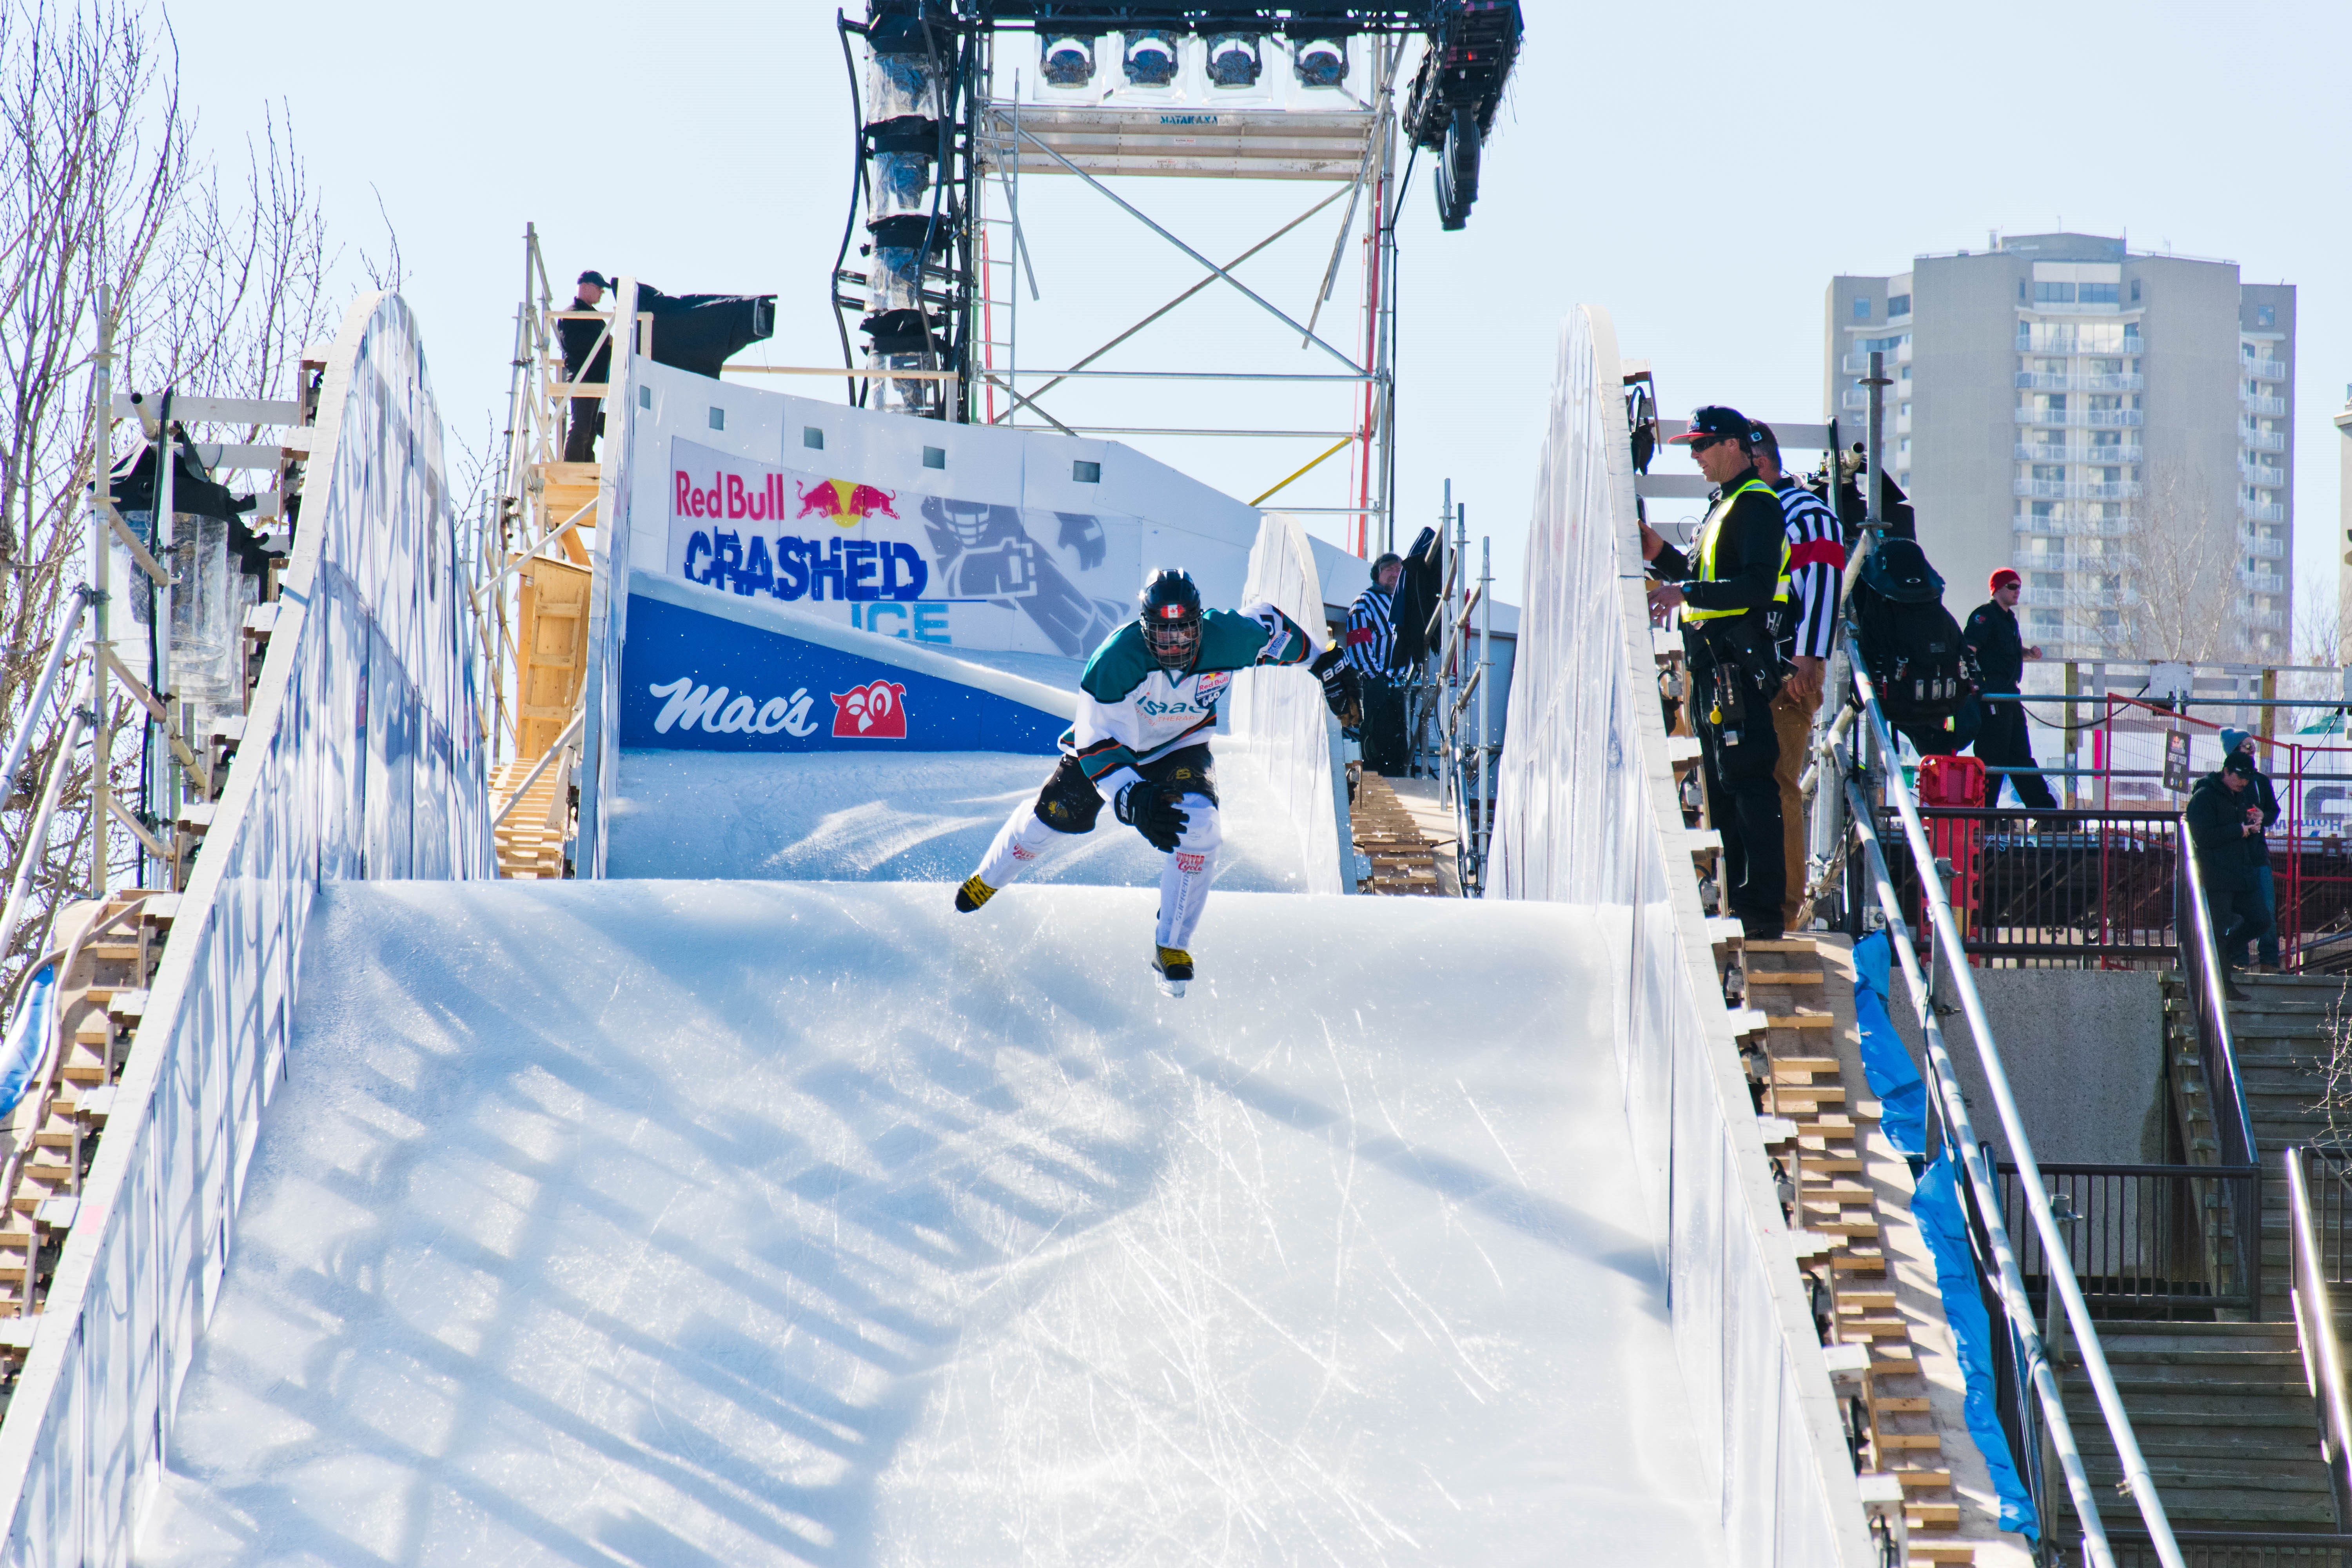 Oli Isaac competes in Red Bull Crashed Ice